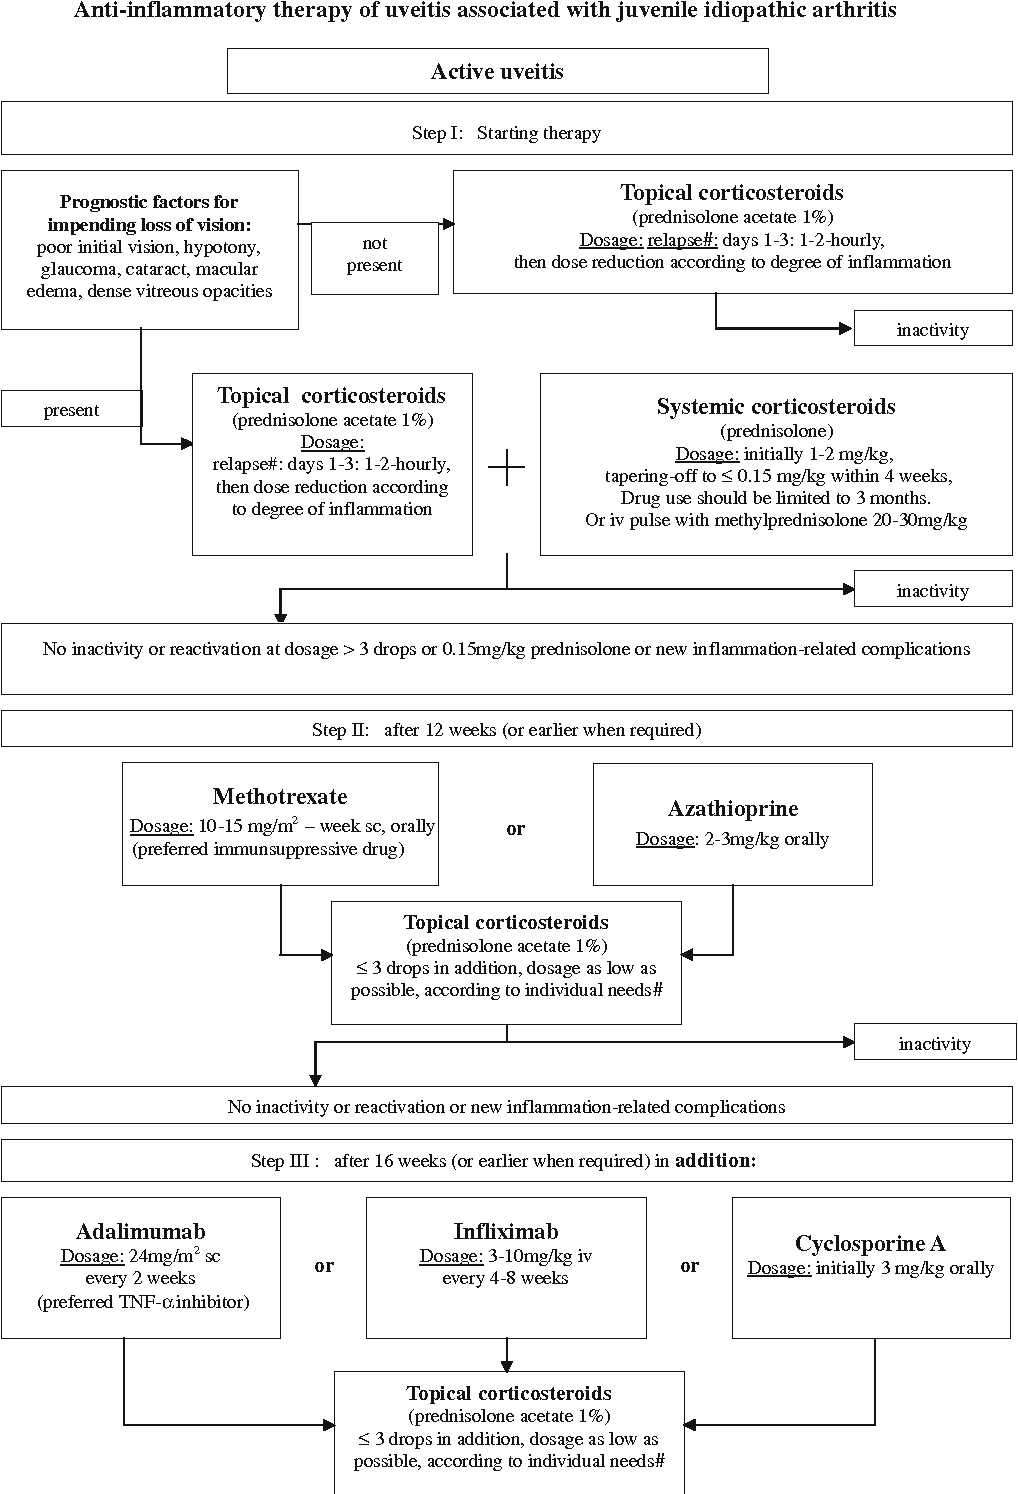 Fig. 1 Evidence-based, interdisciplinary guidelines for anti-inflammatory treatment of uveitis associated with juvenile idiopathic arthritis. Algorithm for anti-inflammatory treatment